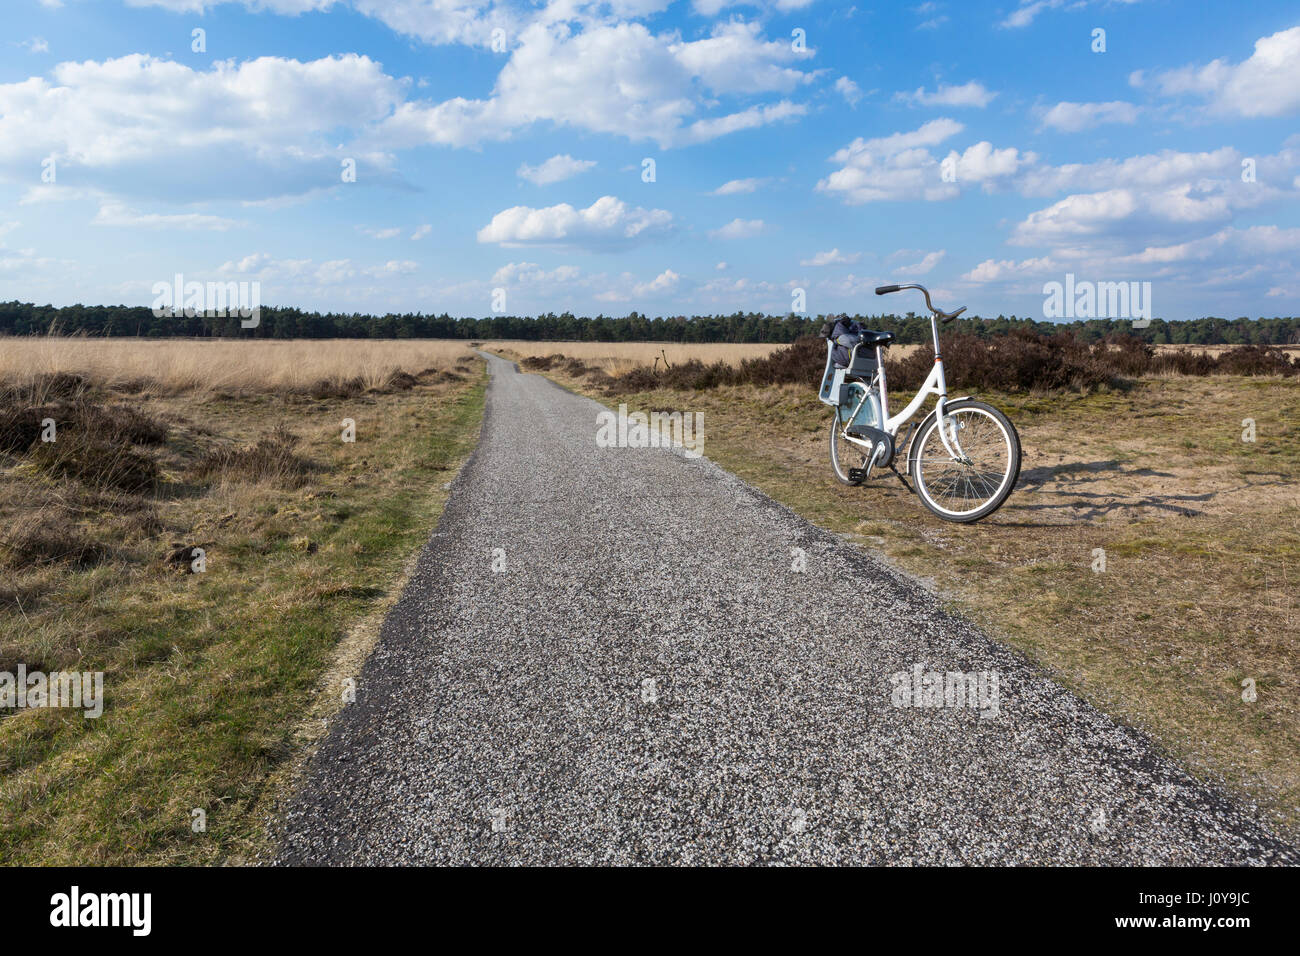 Bicycle in the Hoge Veluwe National Park, Netherlands - Stock Image